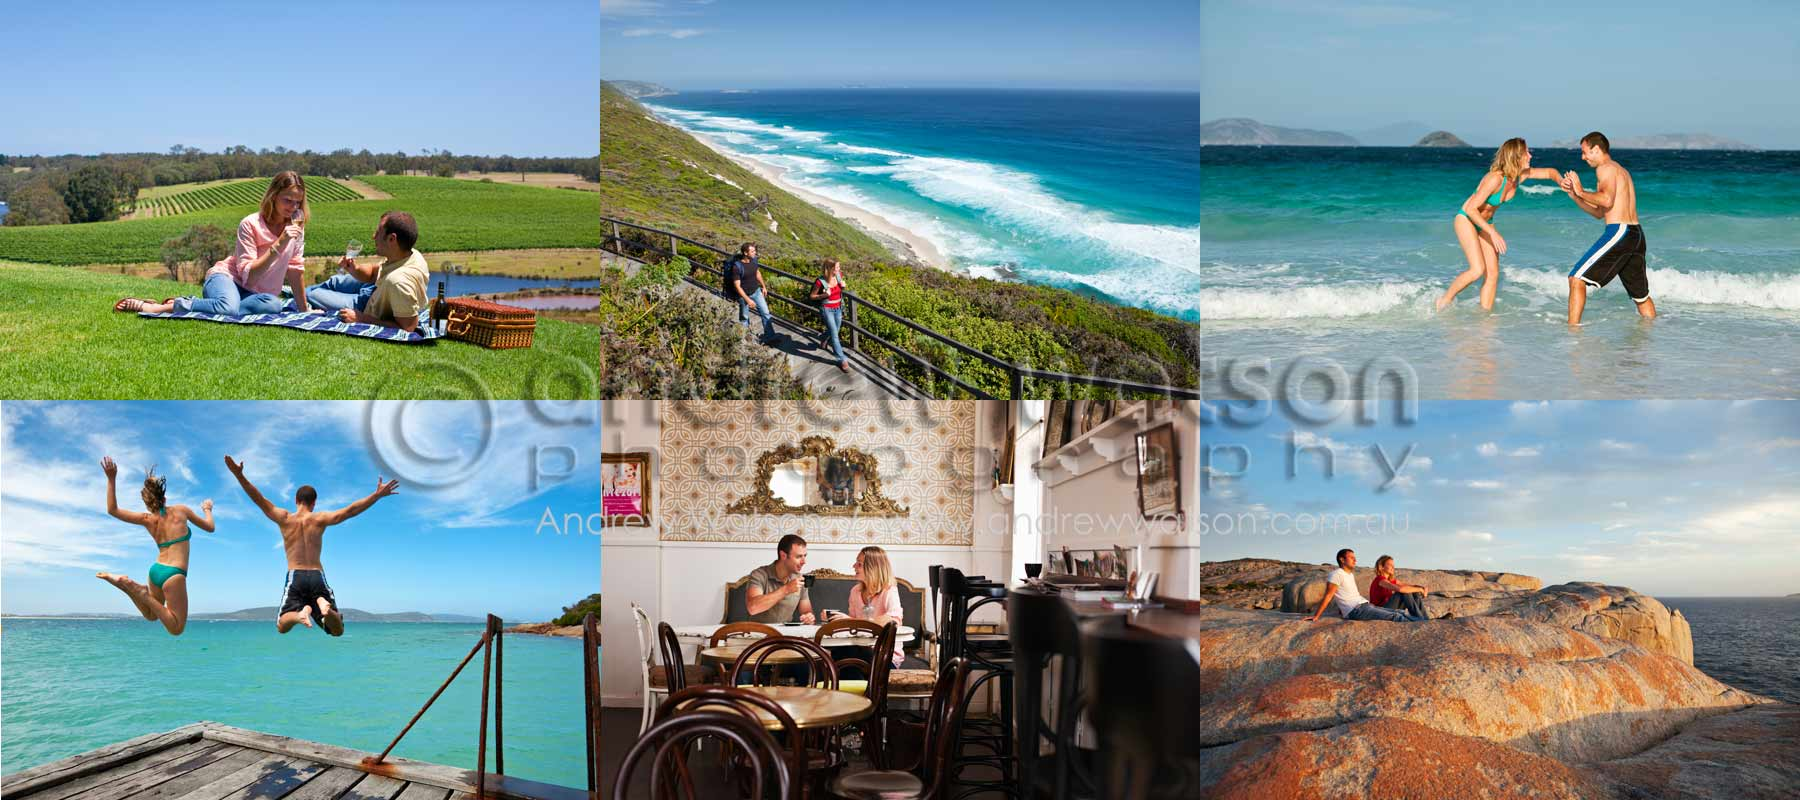 Tourism & Lifestyle Photography - Images of tourist couple enjoying the outdoors lifestyle of Albany, Western Australia